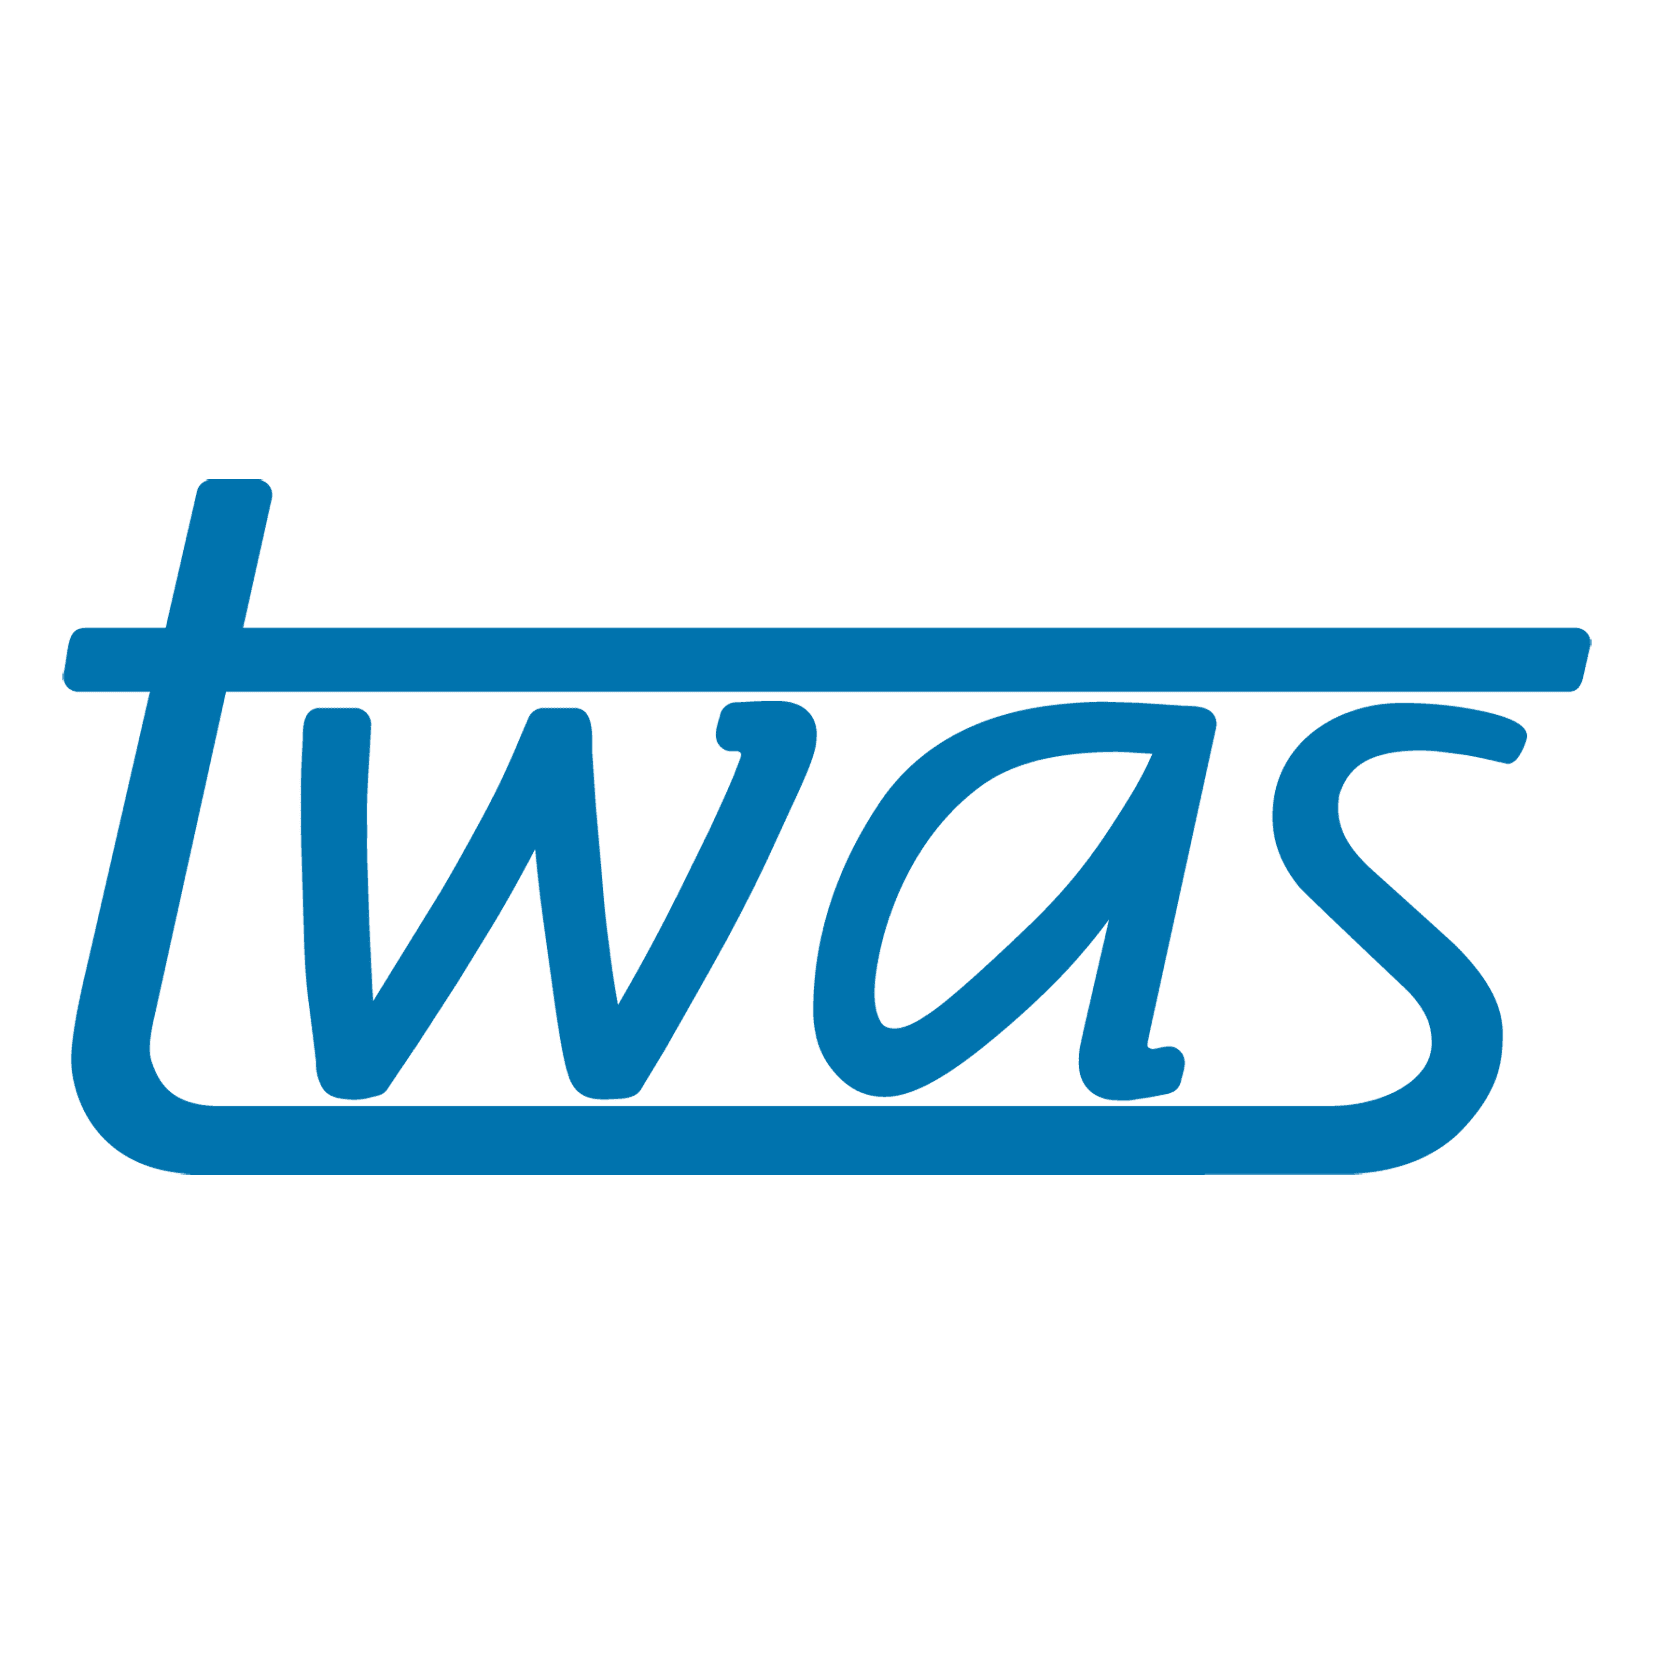 CAS-TWAS President's PhD Fellowship Programme 2019 for Study in